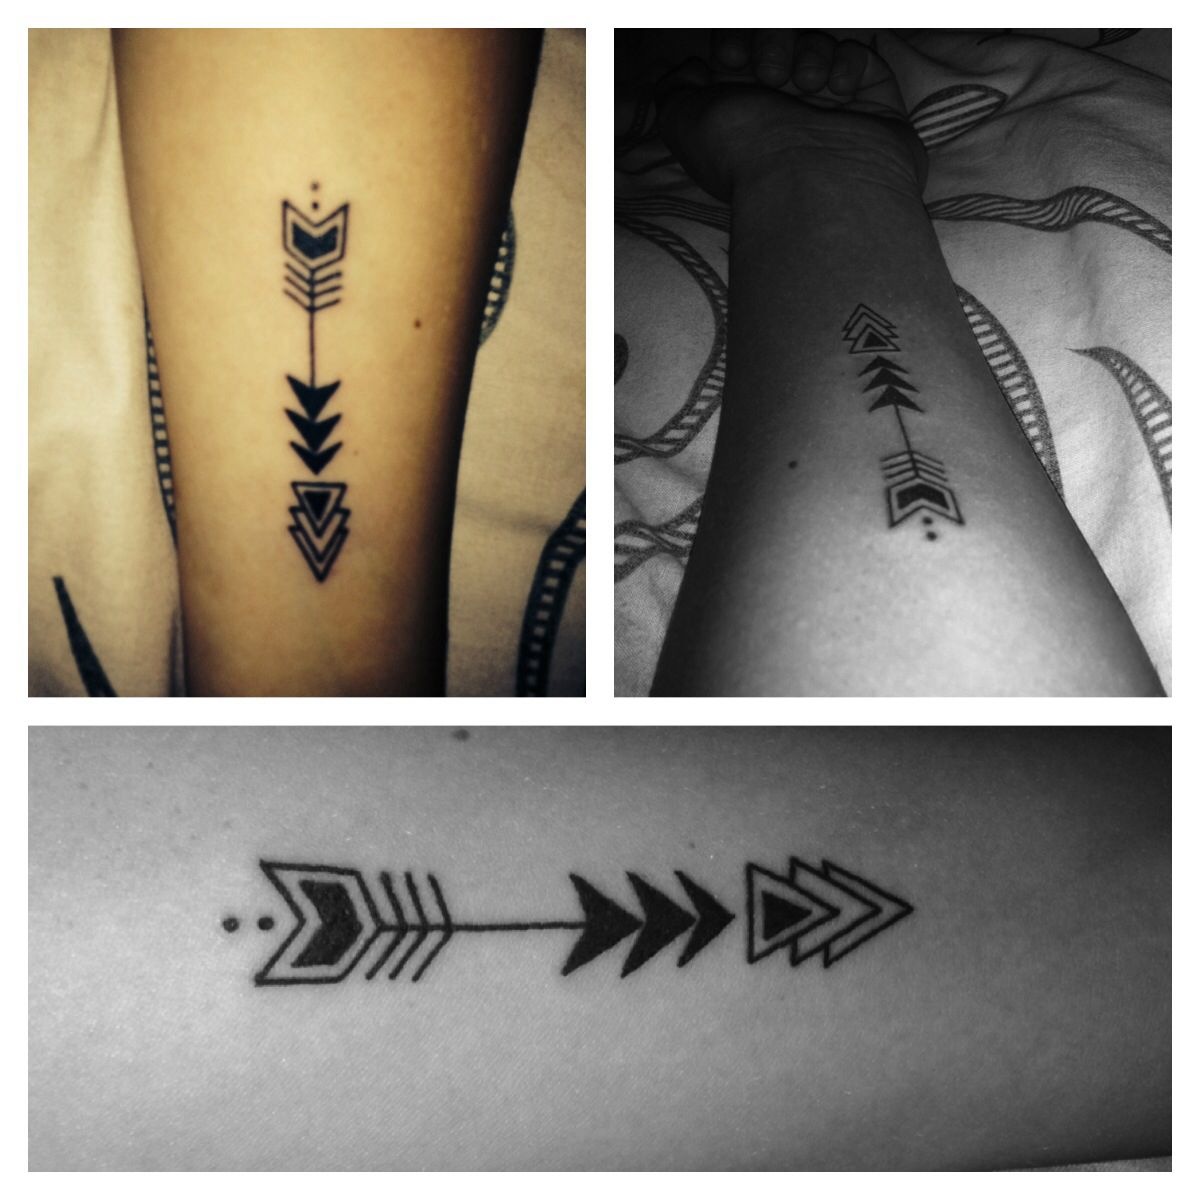 Aztec Arrow Tattoo on the Arm. Dainty trendy meaningful